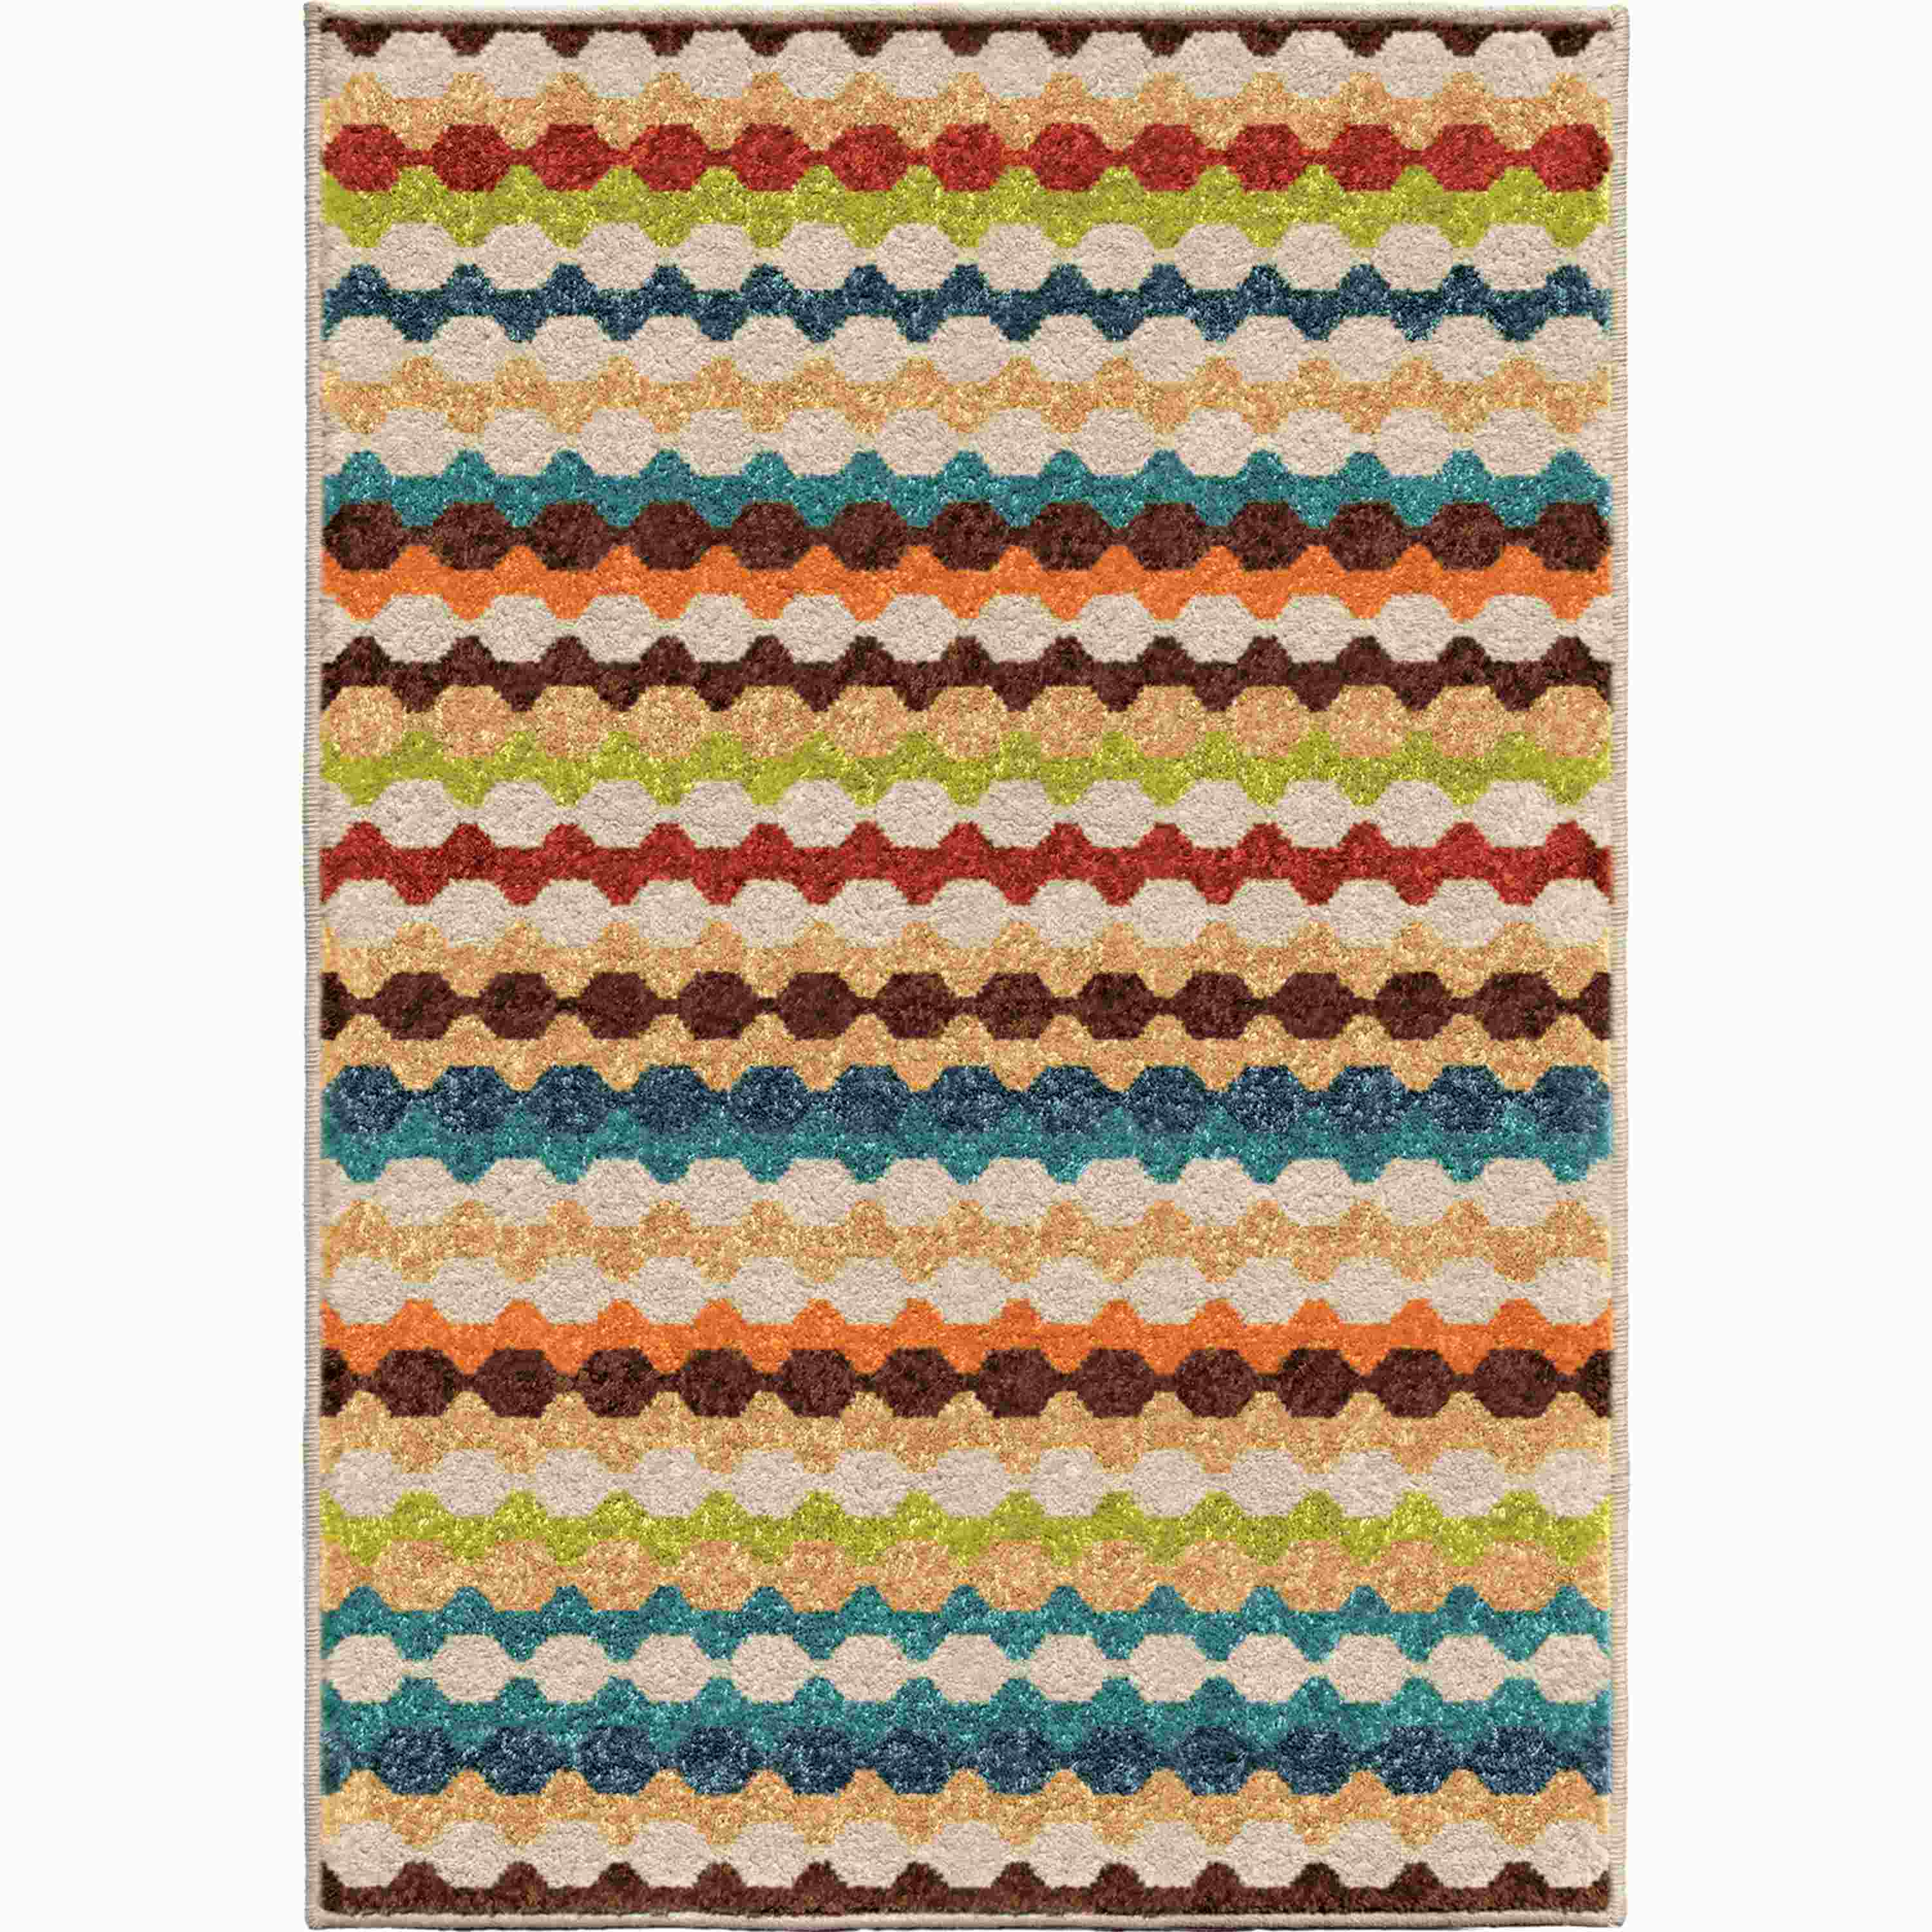 Orian Rugs Indoor/Outdoor Stripes Nik Nak Gemstone Accent Rug